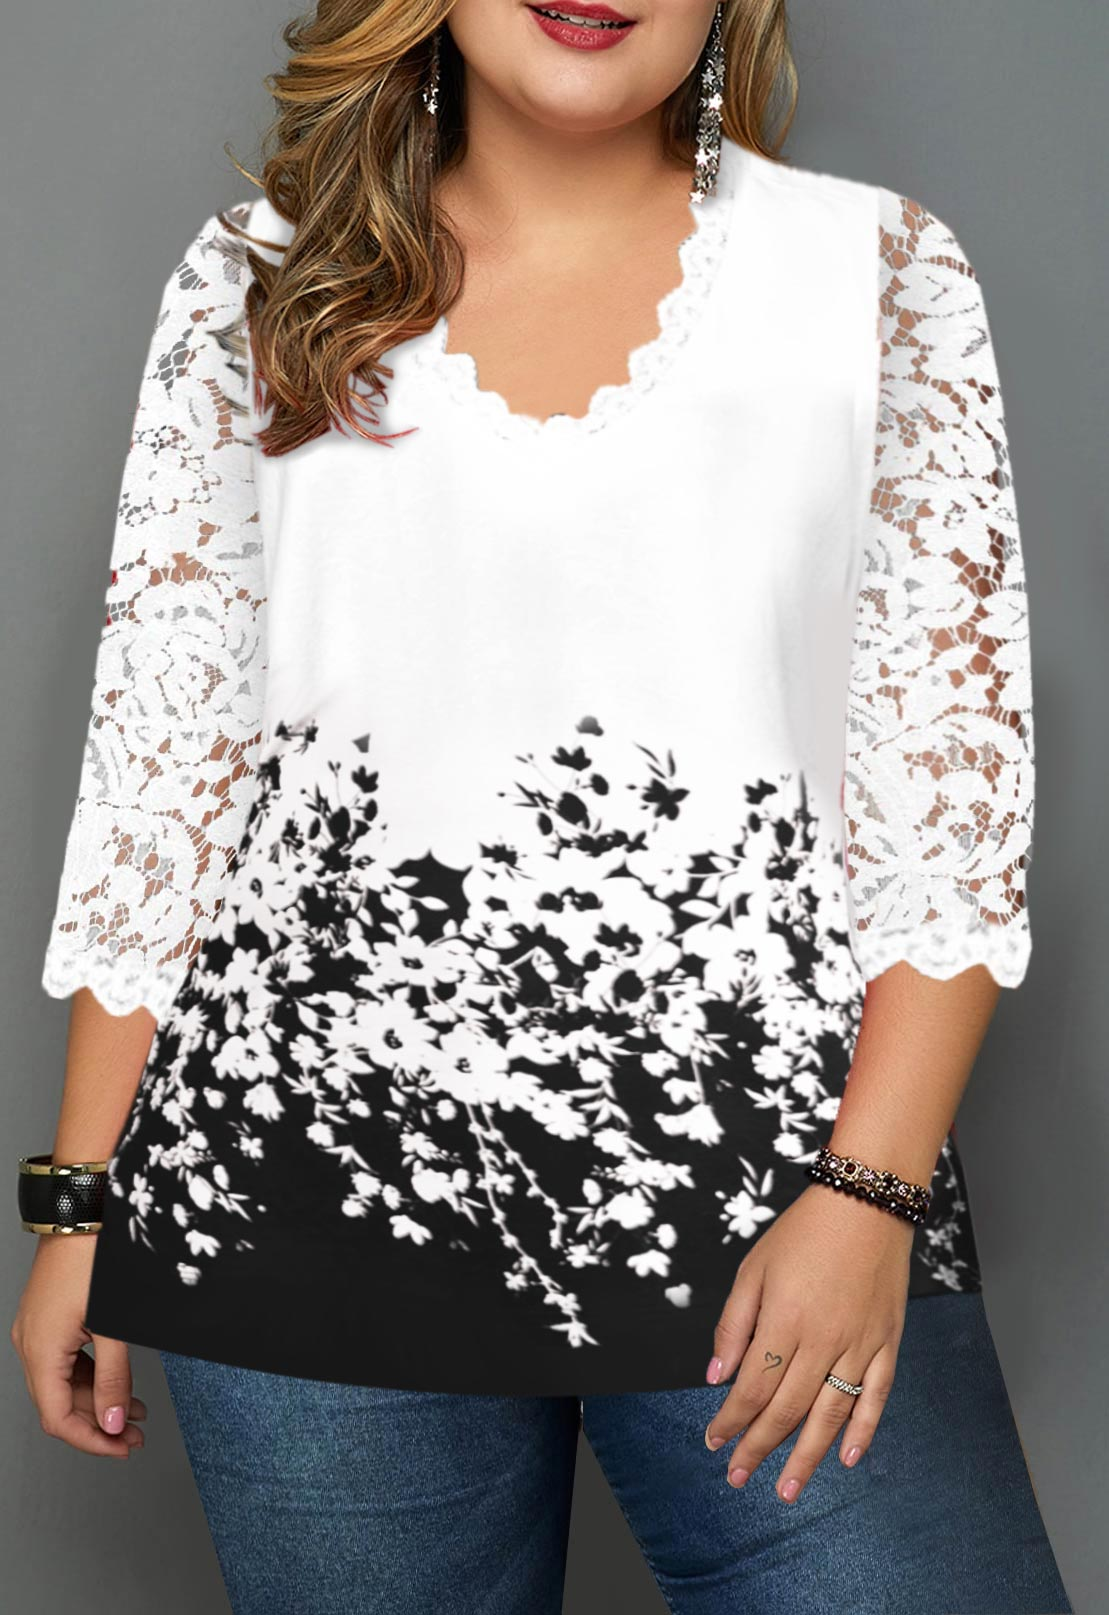 ROTITA Plus Size Lace Panel Floral Print T Shirt